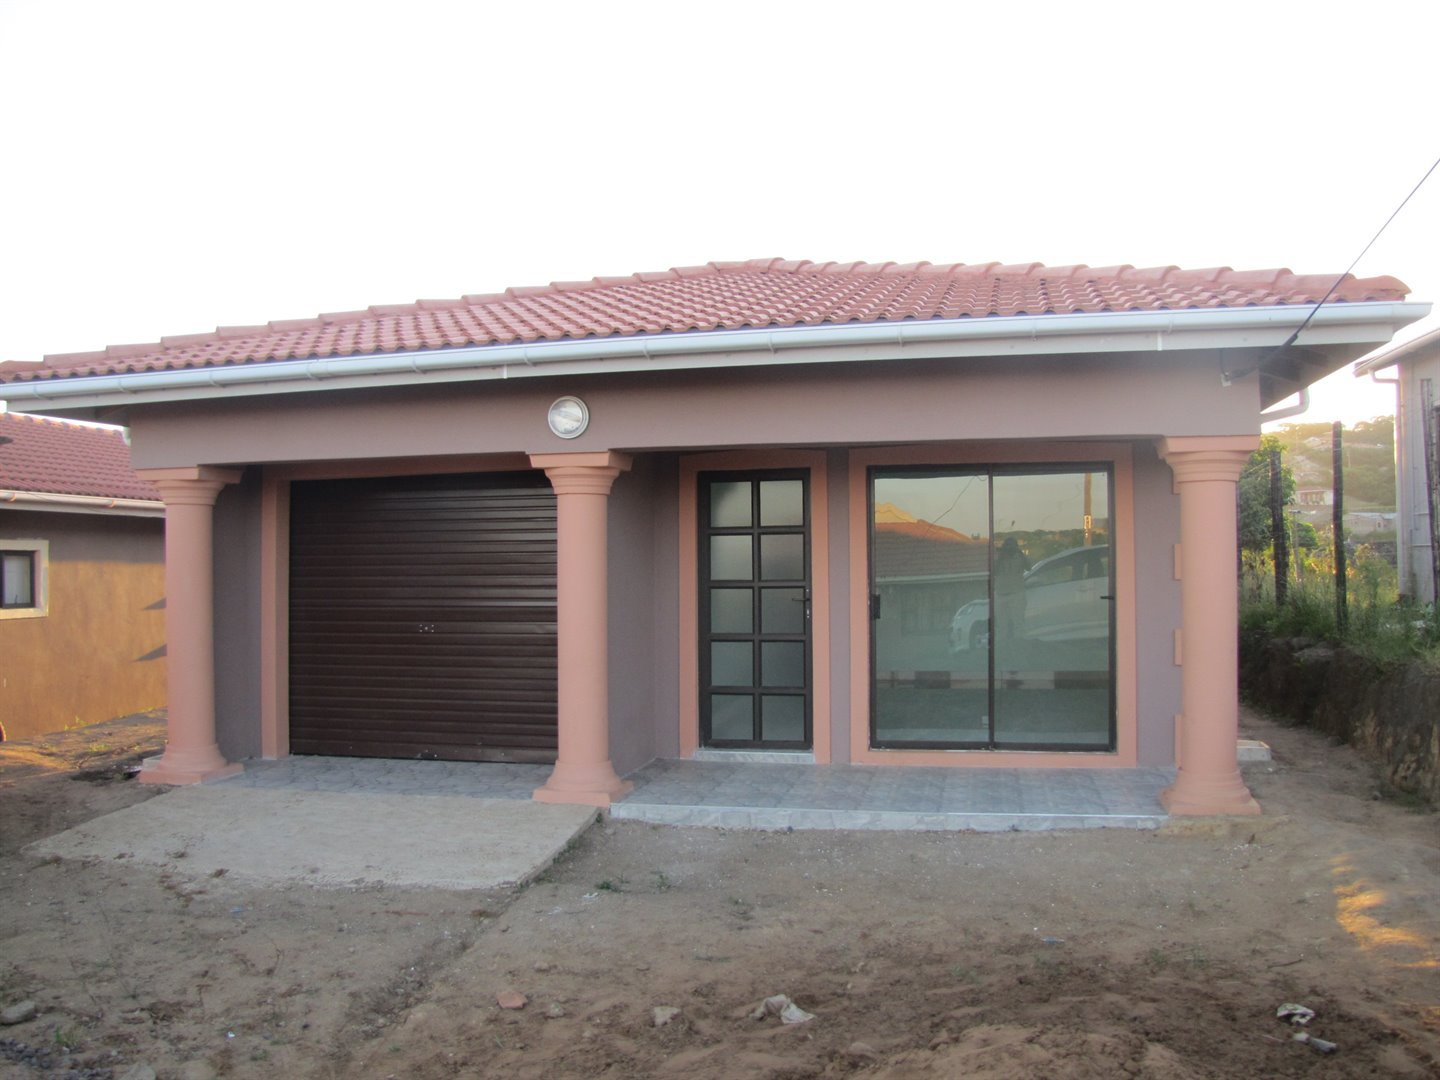 Durban lovu property houses for sale lovu cyberprop 7 12 for Houses for sale with pictures